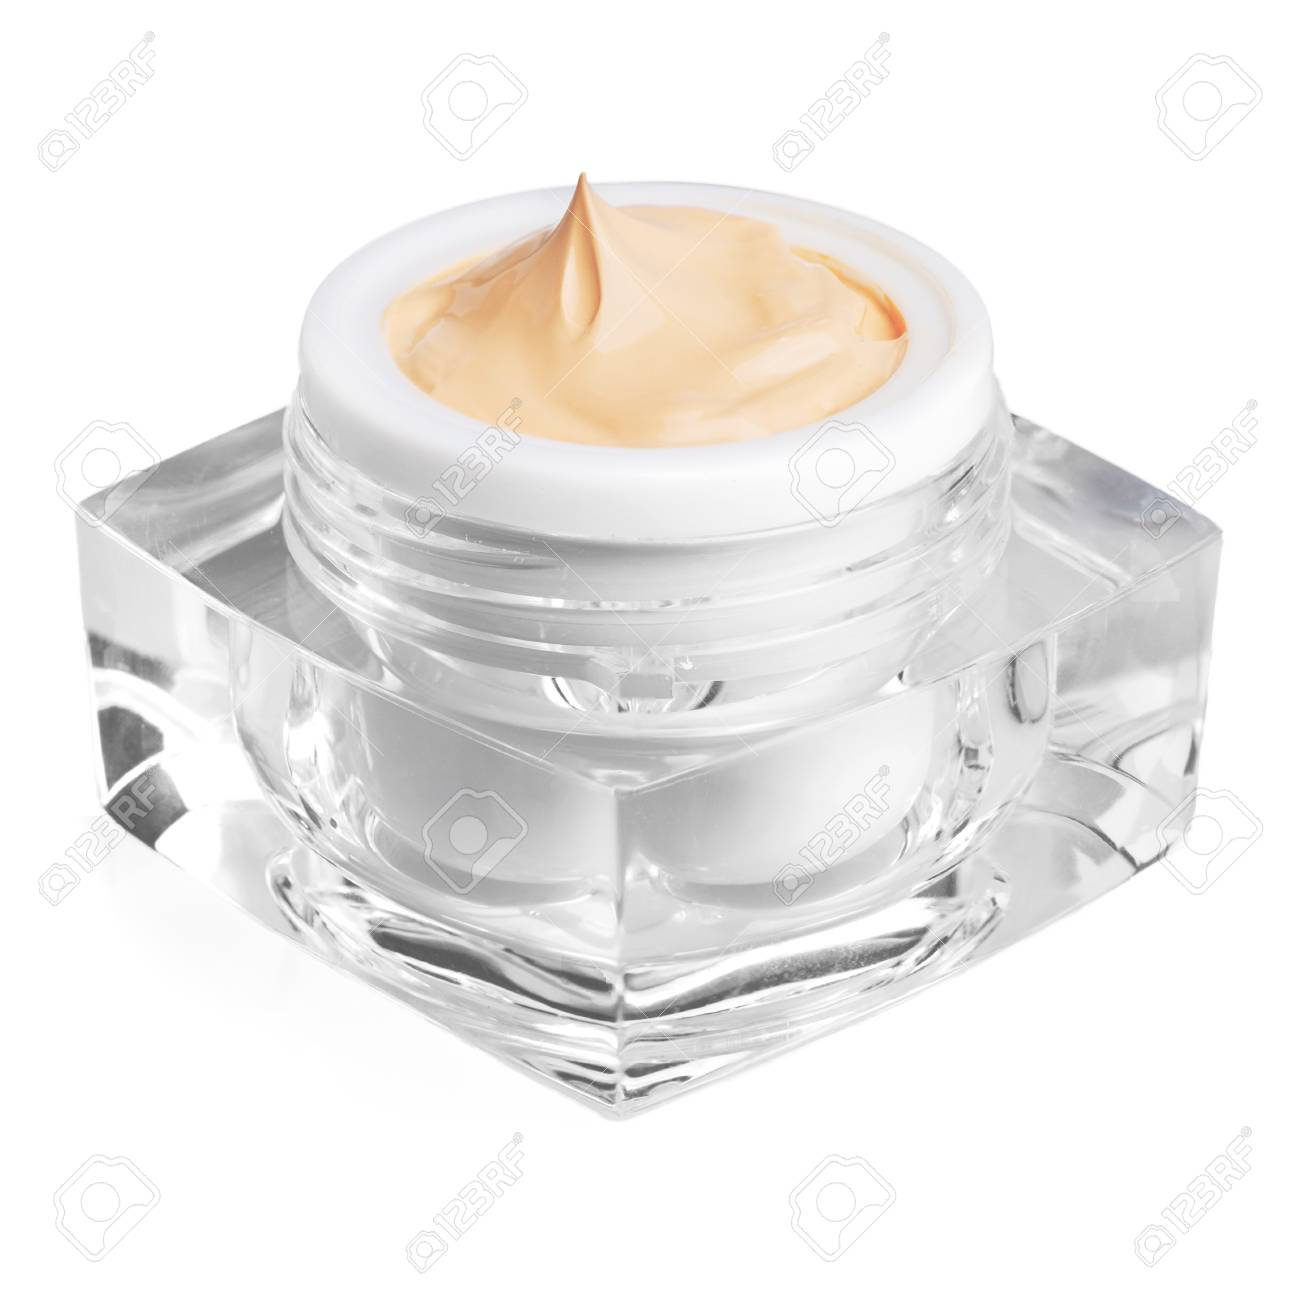 Close up of cosmetic cream container isolated on white background - 105338132